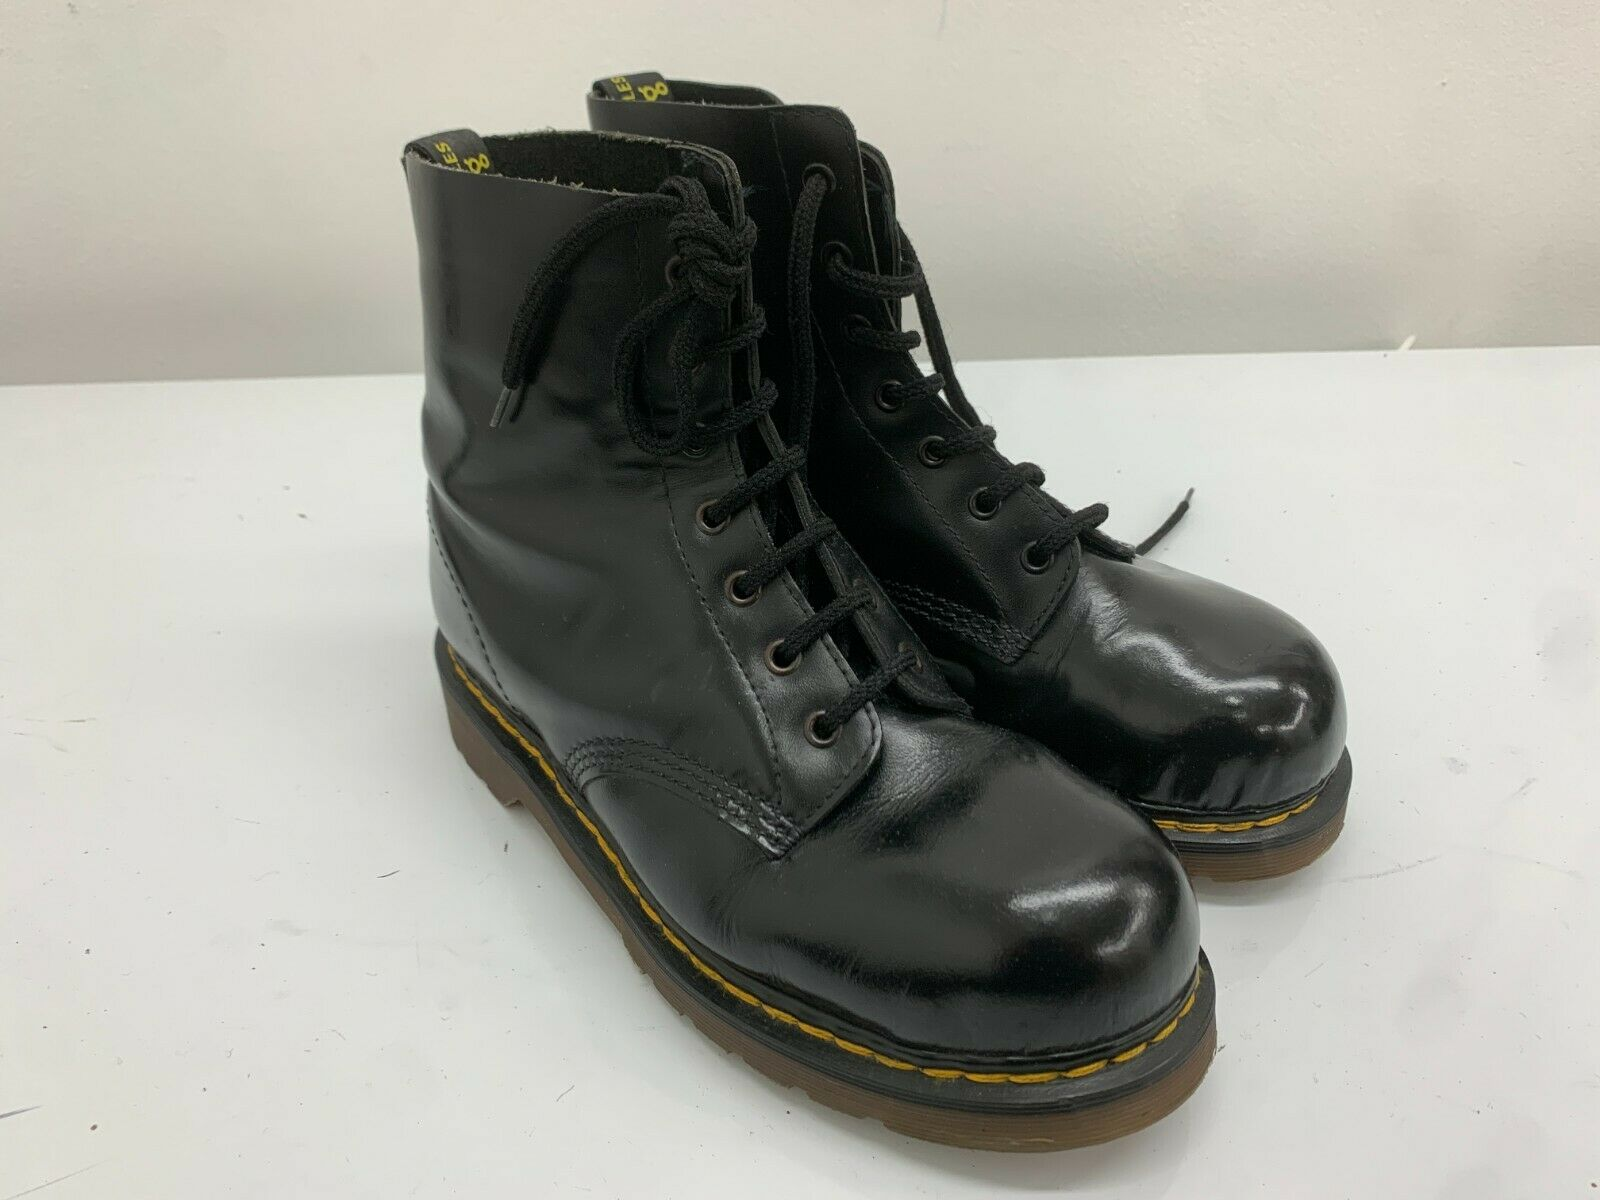 Doc Dr Martens Boots 7 Eyelets Black, Size 8UK, Steel Toe Caps, Made In England.